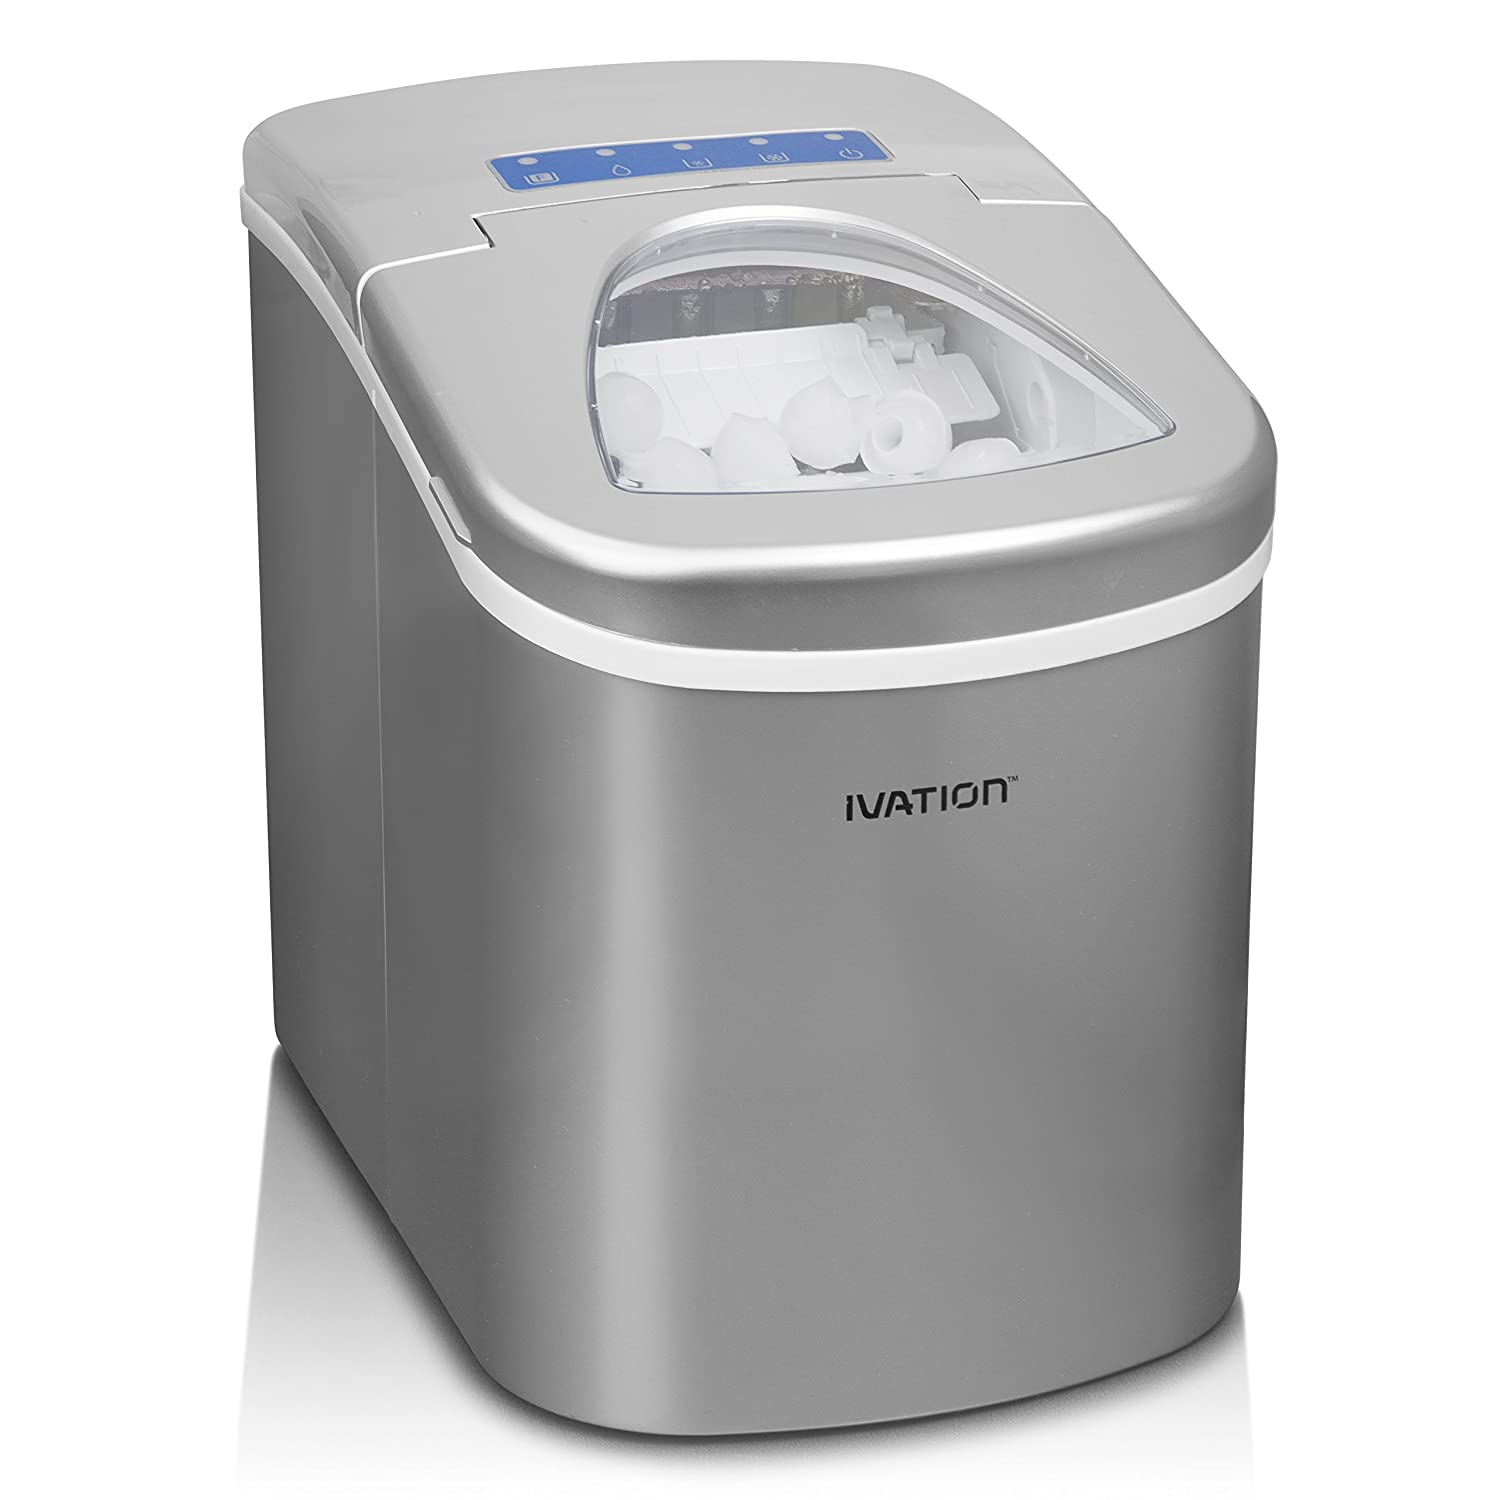 Ivation Portable Ice Maker w/Easy-Touch Buttons for Digital Operation - 2 Selectable Cube Sizes - Yield Up To 26.5 Pounds of Ice Daily